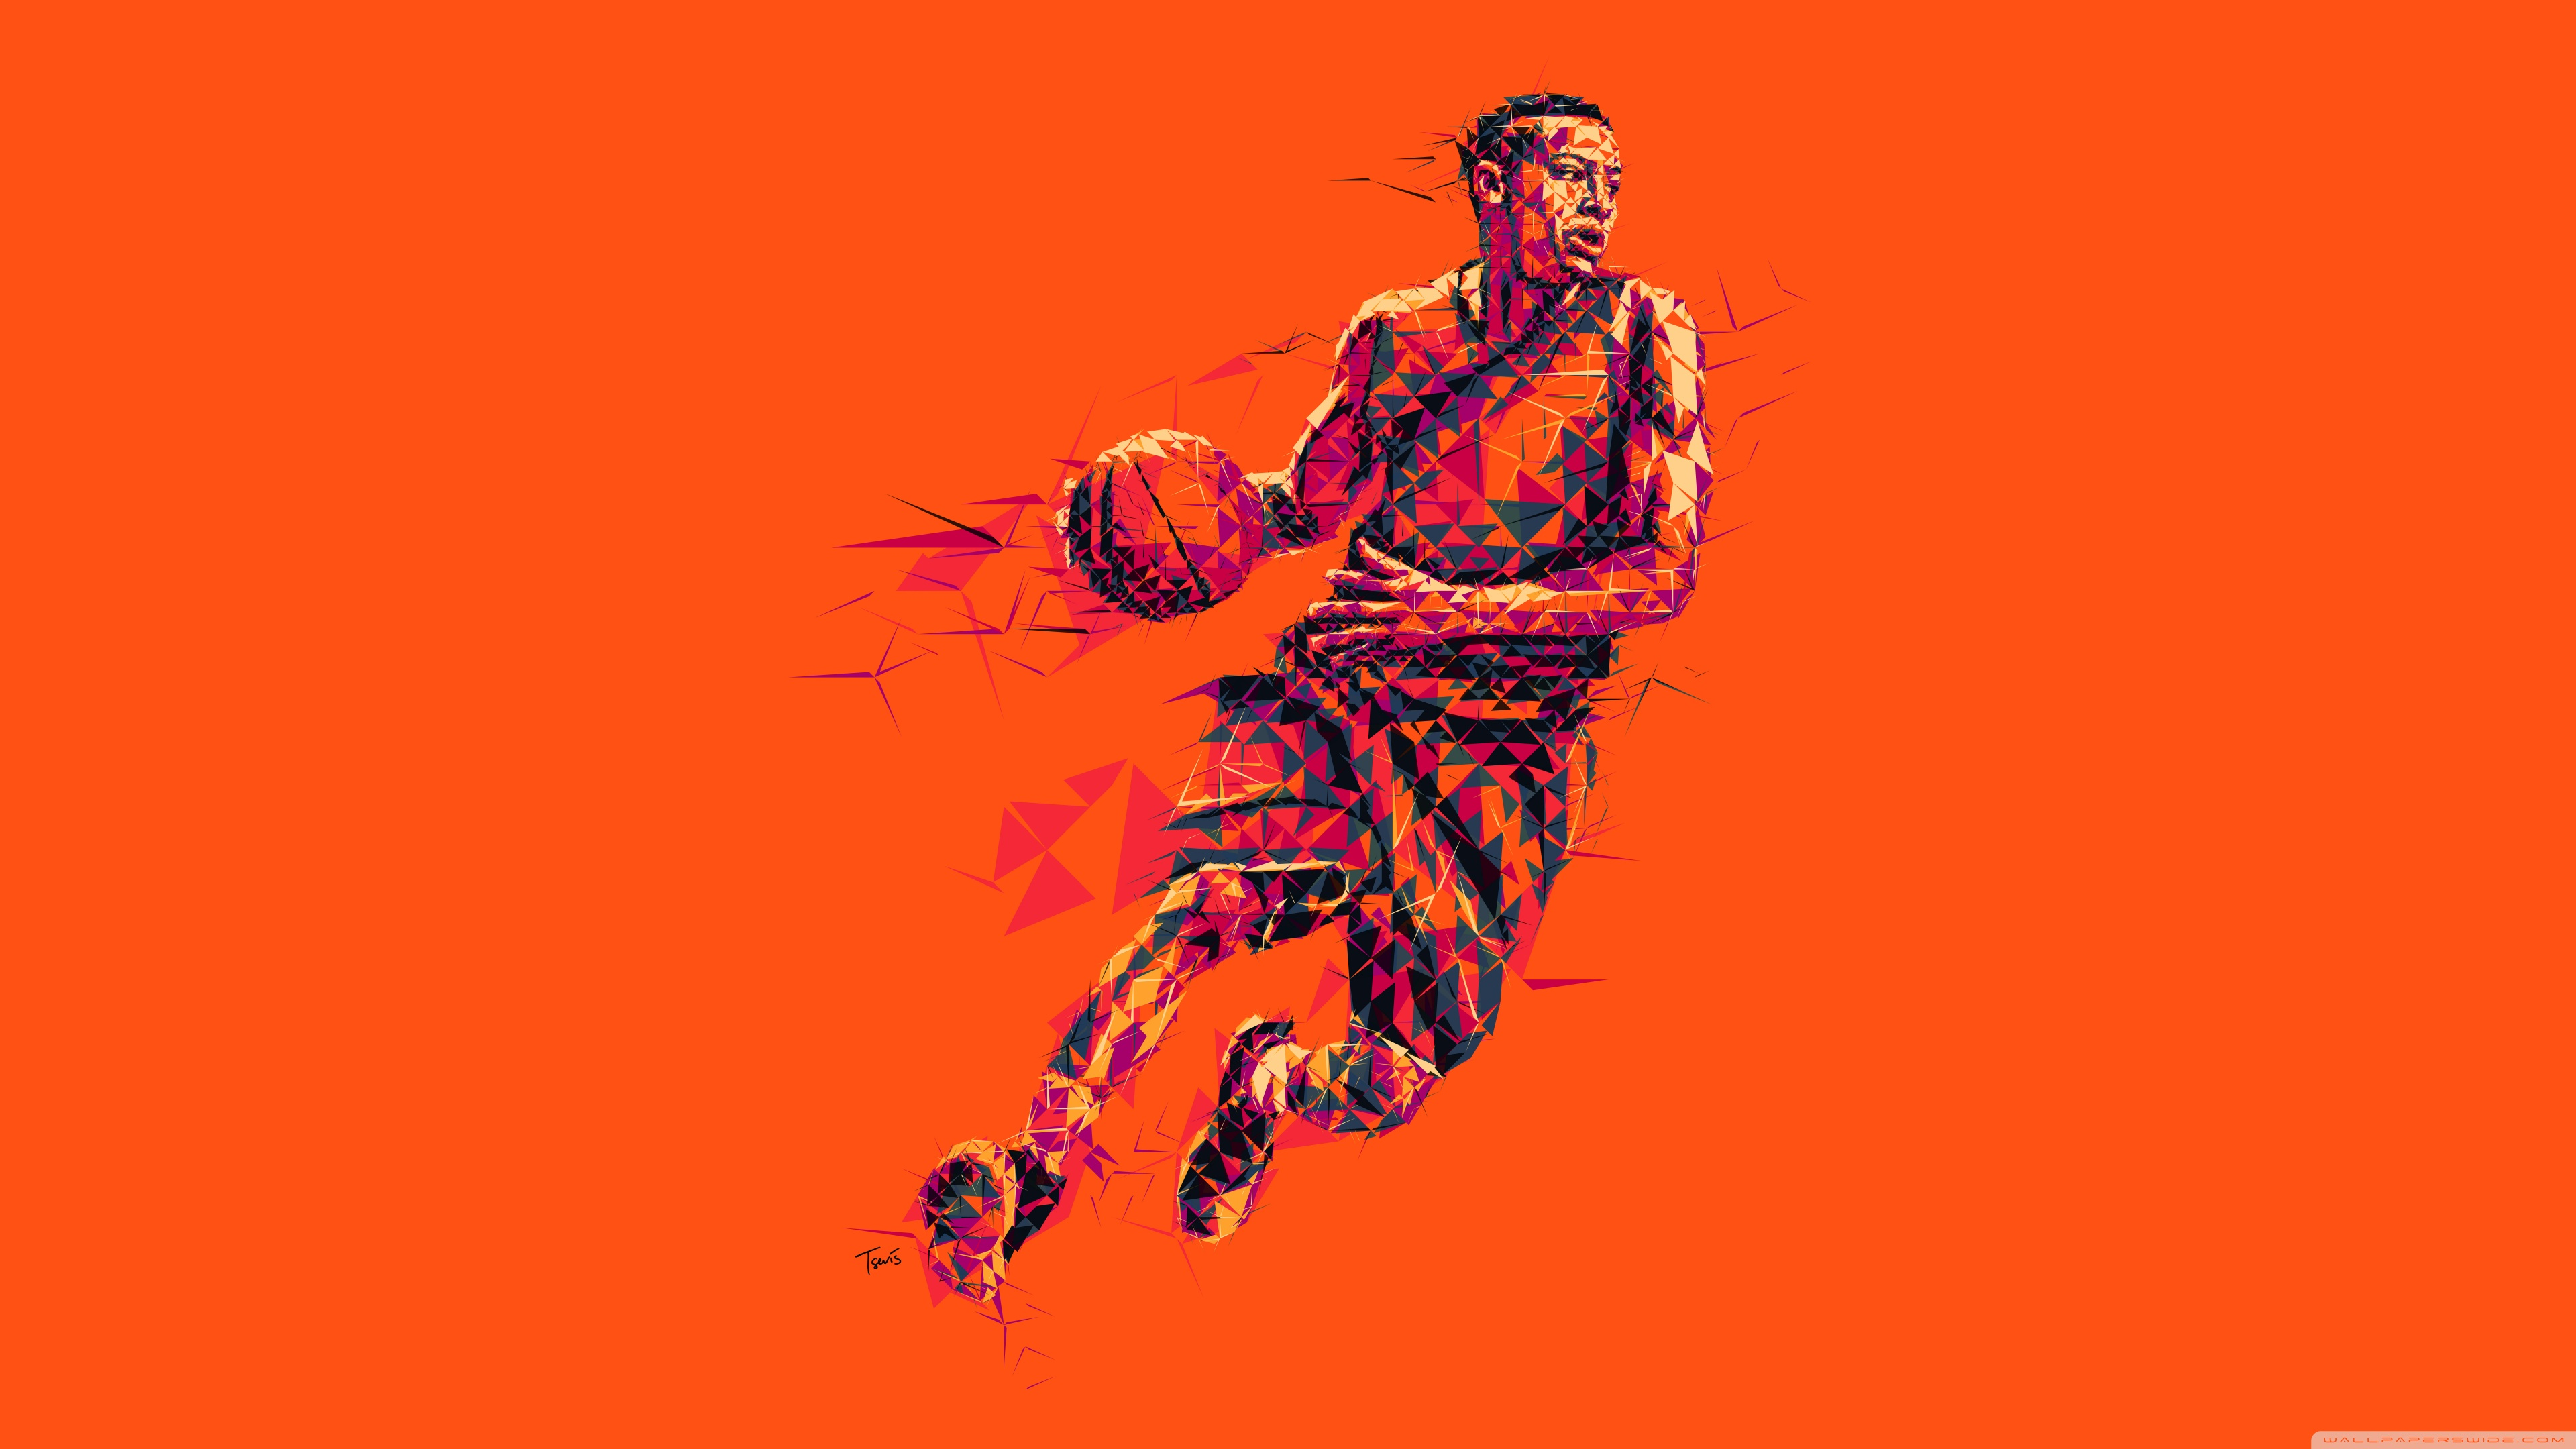 Download Wallpaper Basketball Gallery